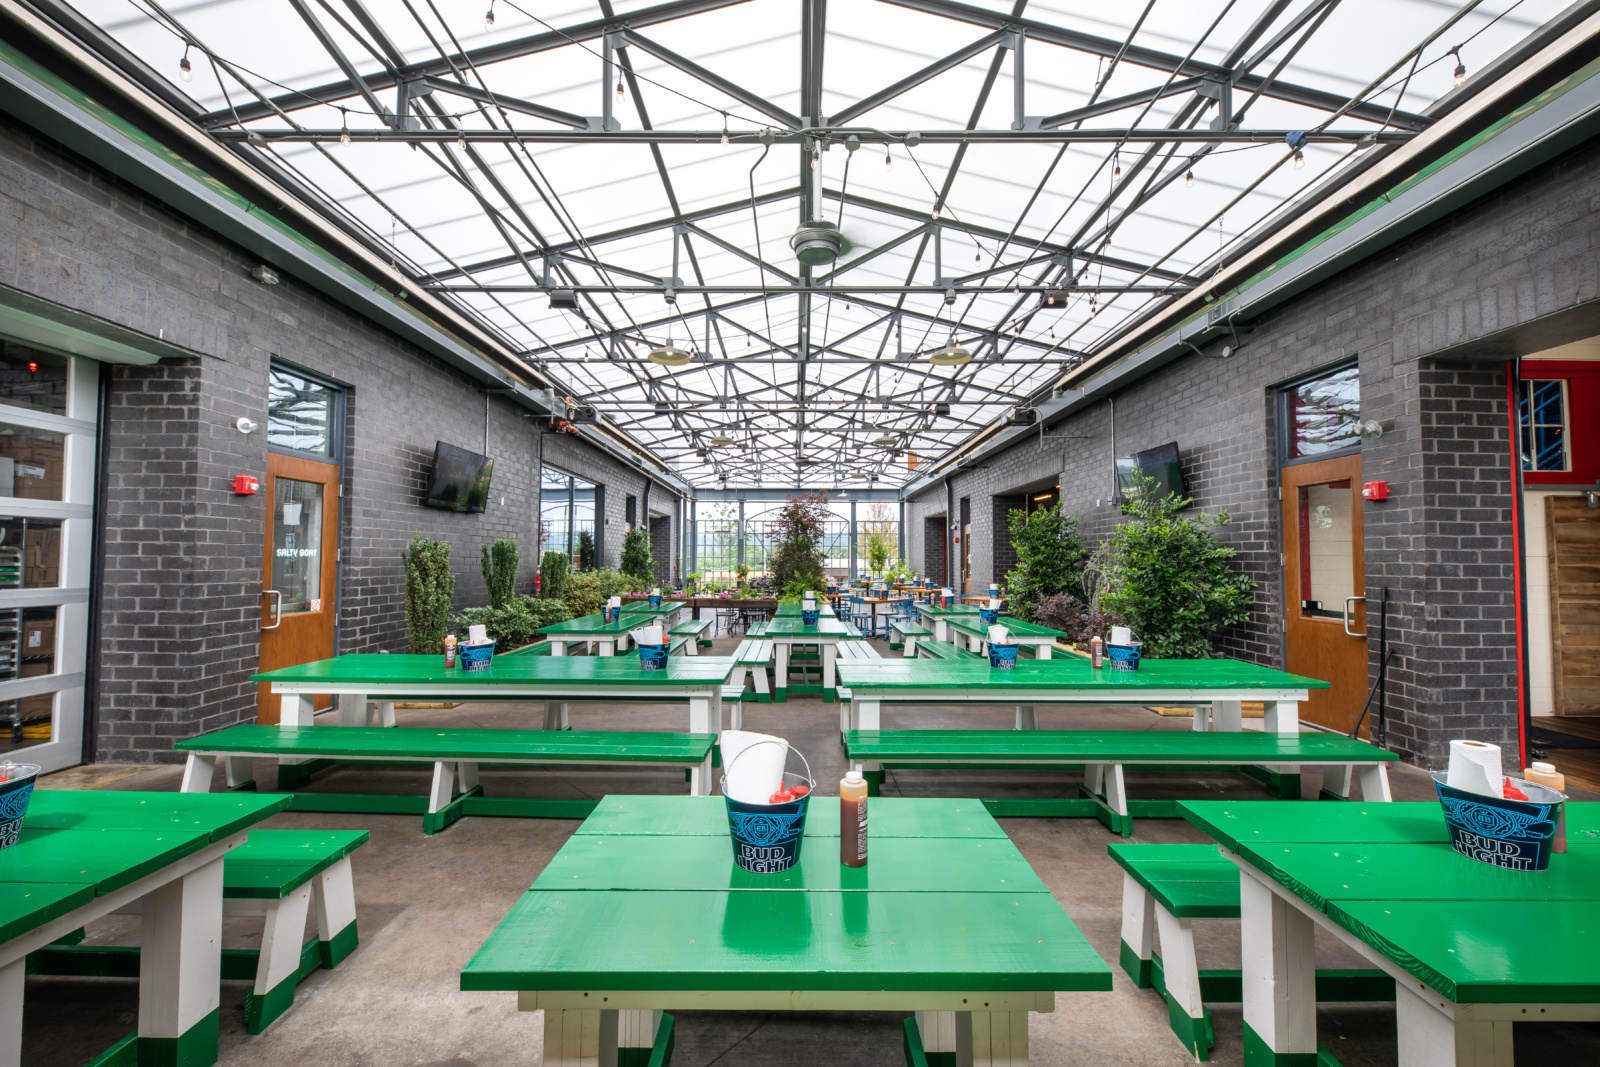 The covered patio of Martin's with green and white picnic tables.